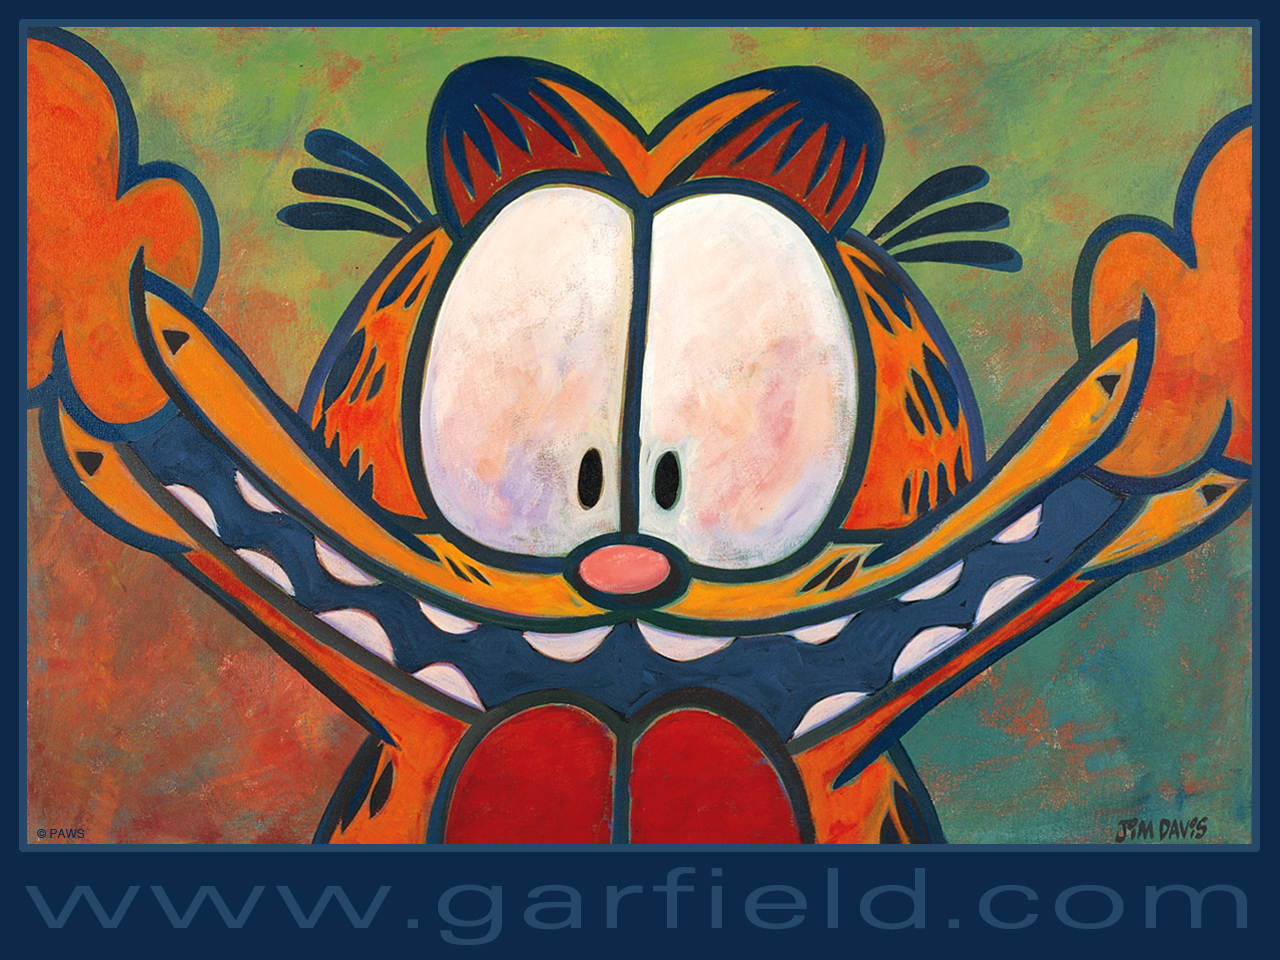 Garfield Garfield wallpapers 1280x960